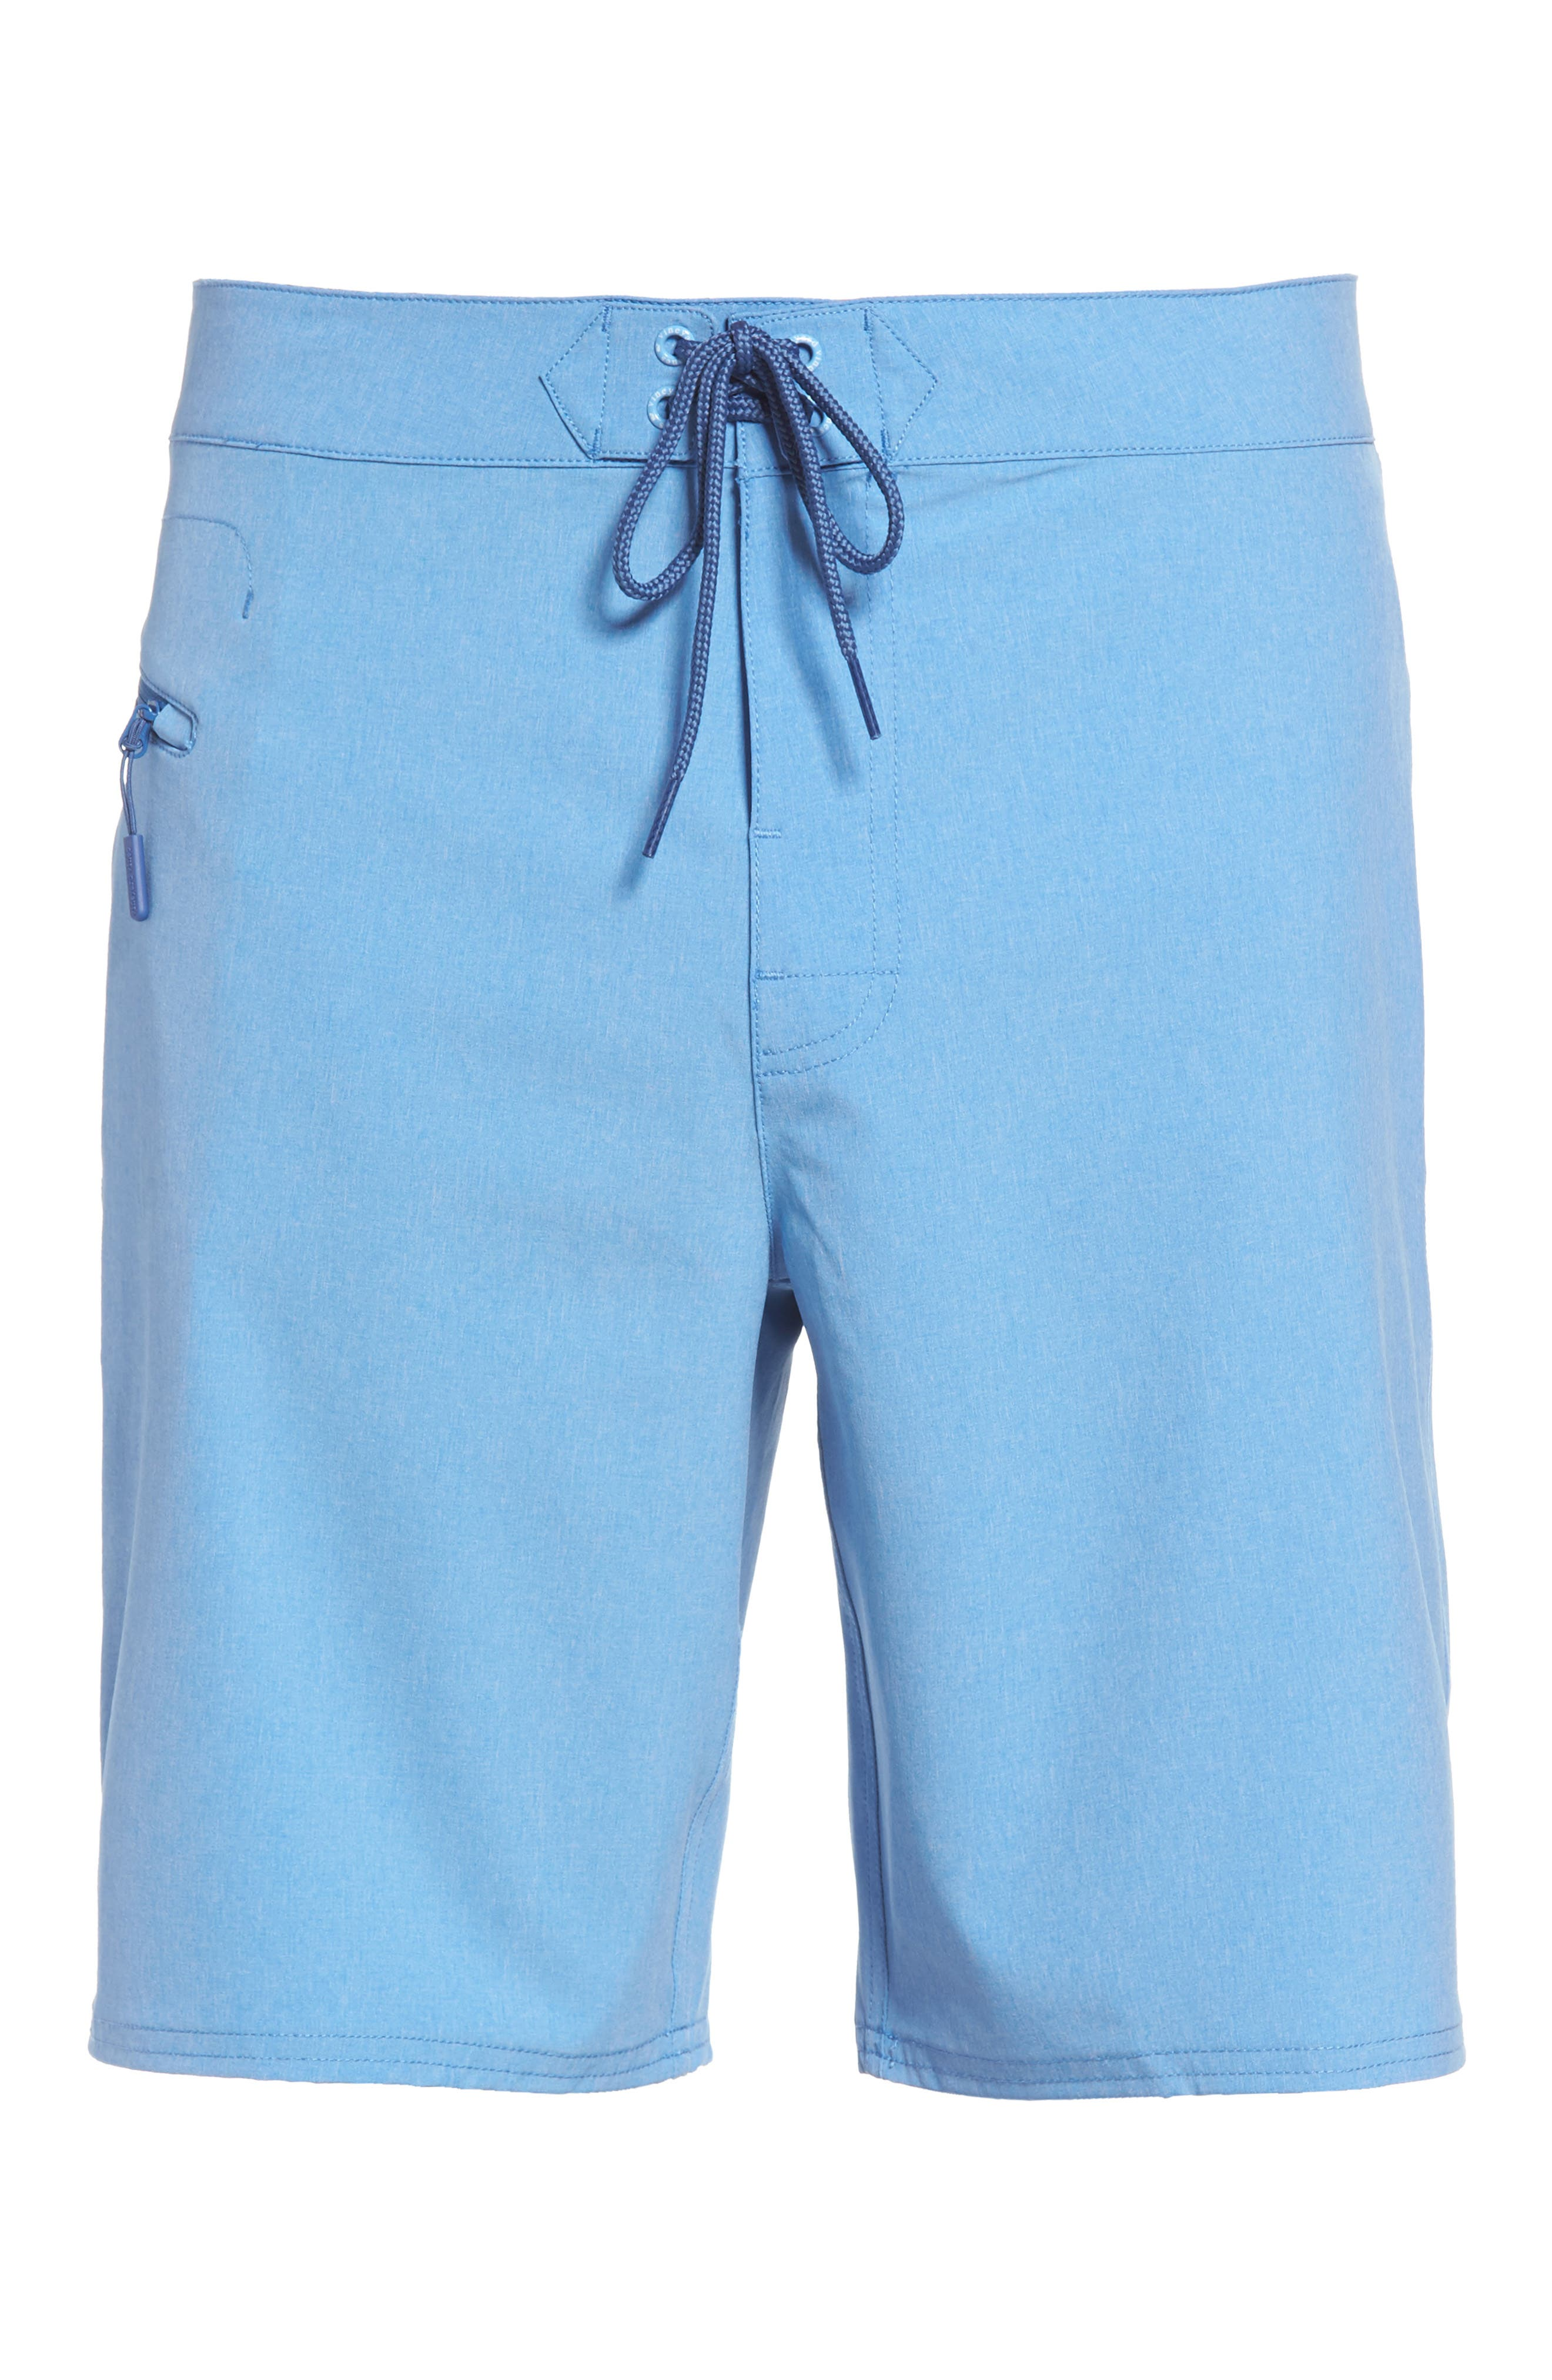 Heather Stretch Board Shorts,                             Alternate thumbnail 24, color,